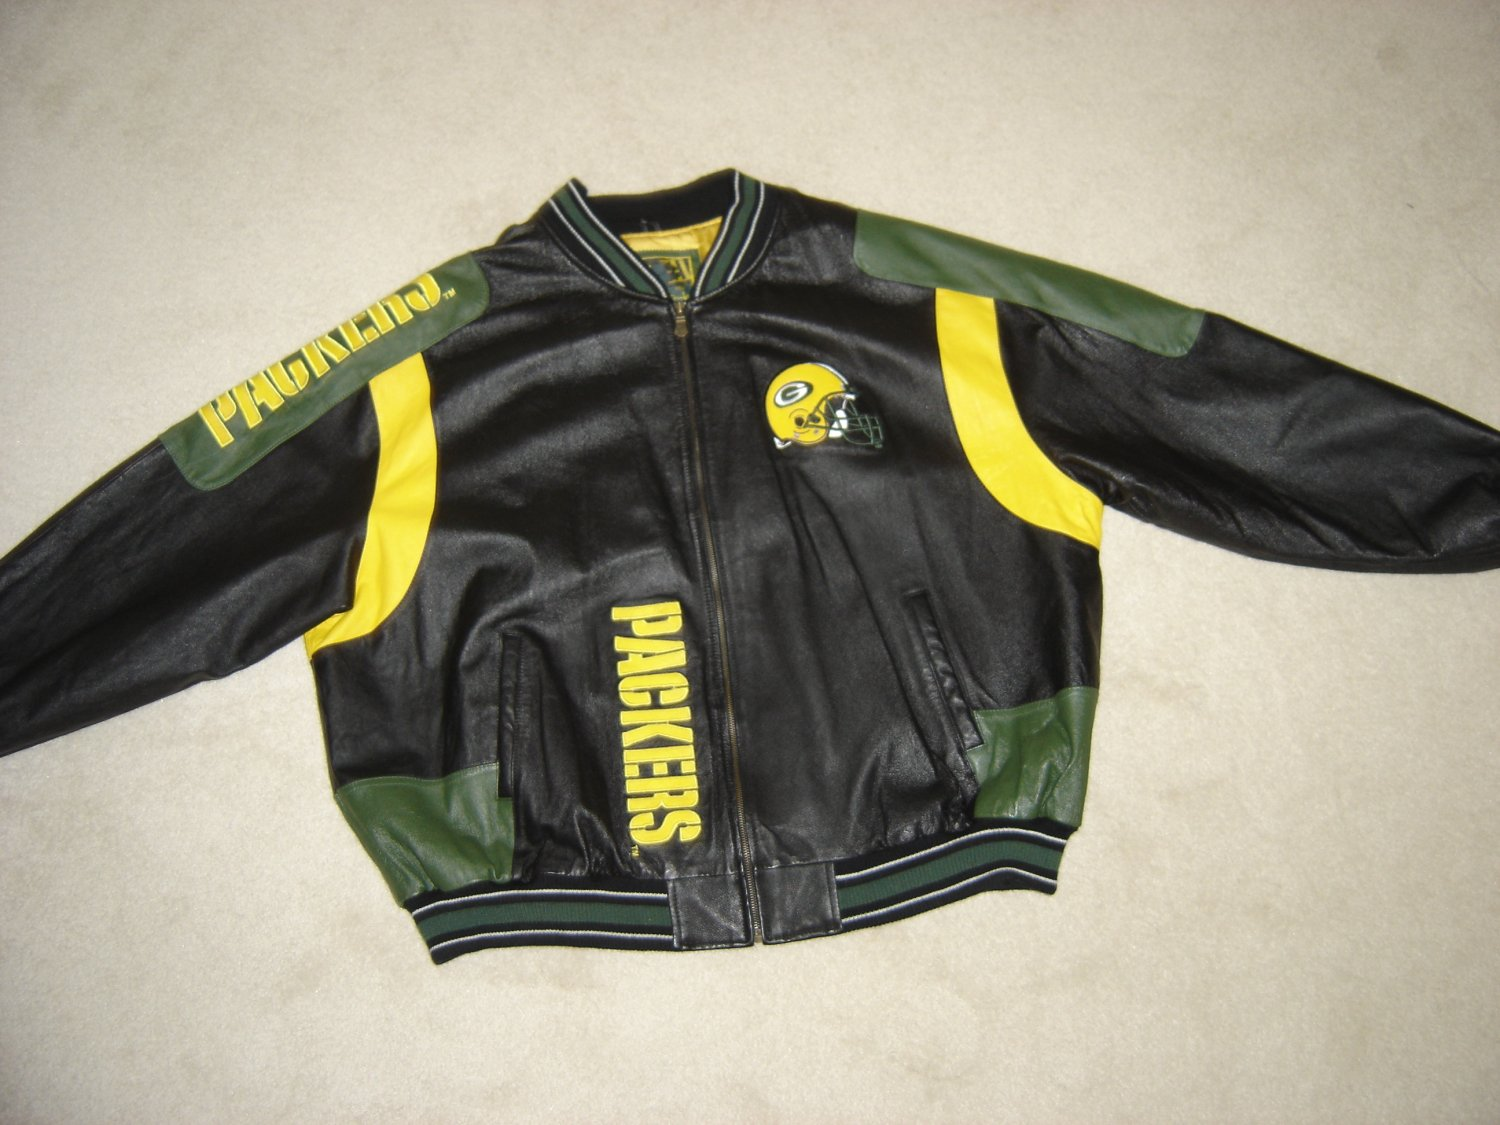 NFL GREEN BAY PACKERS LEATHER JACKET -GLOBAL IDENTITY G-III CARL BANKS-SIZE  4XL-OFFICIALLY LICENSED! 910417a8c